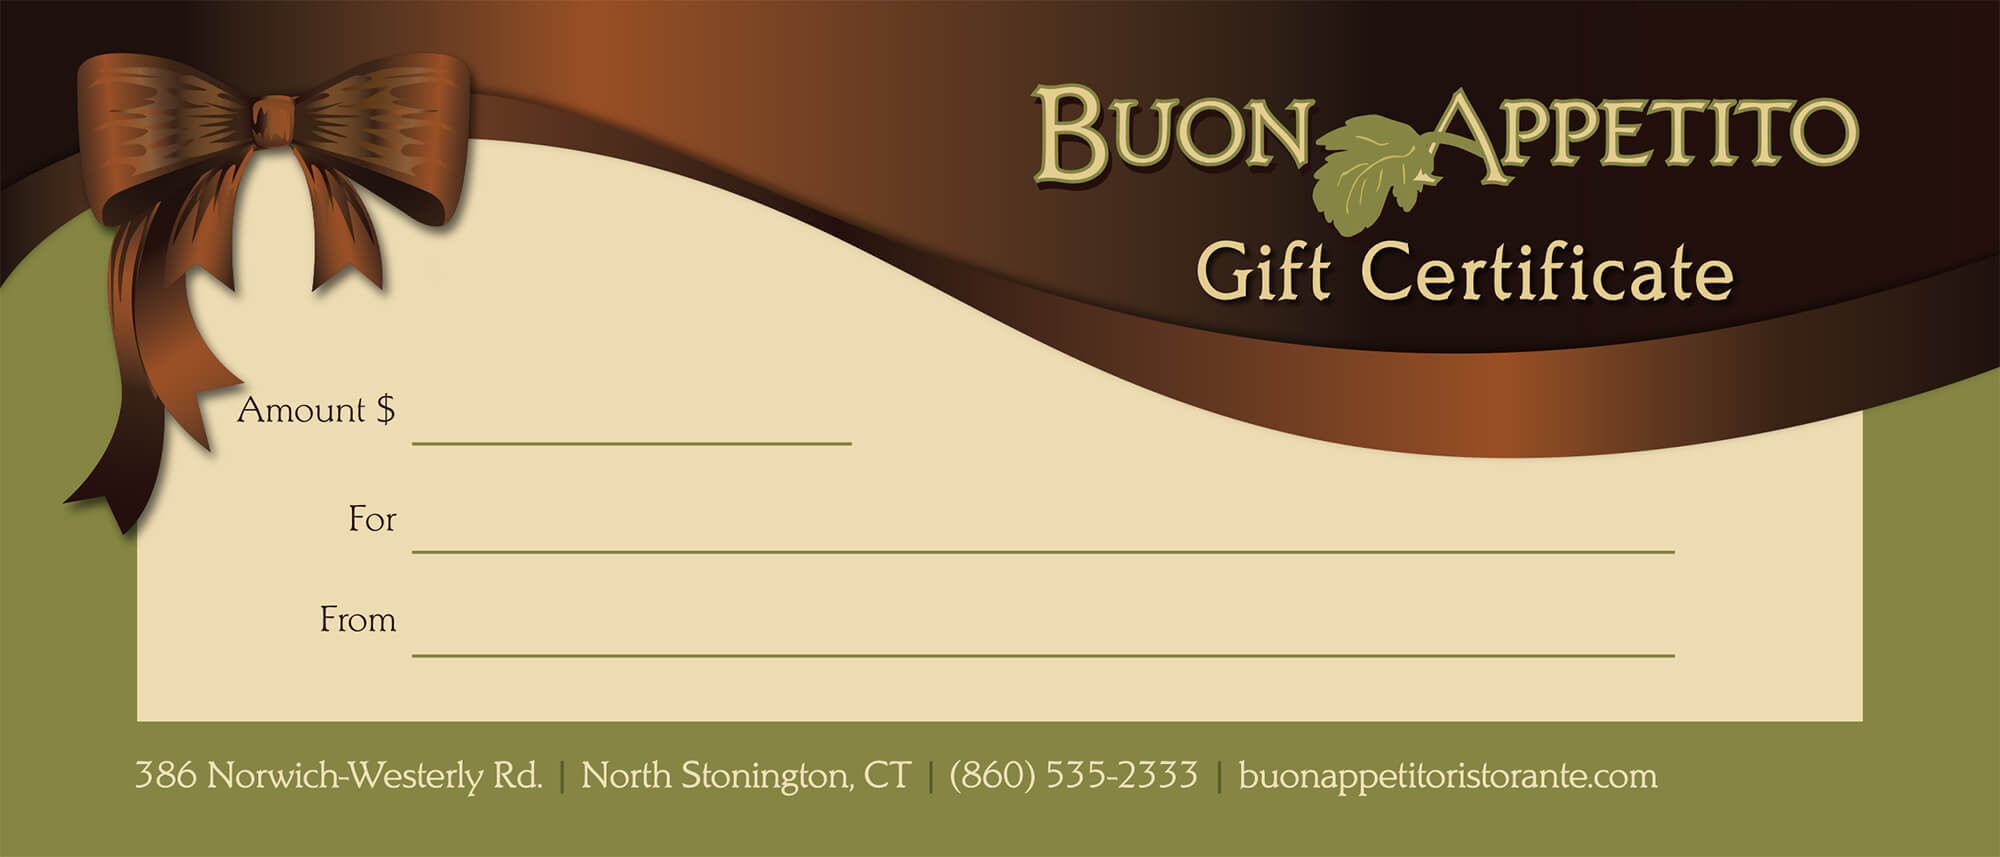 Buan Appetito Gift Certificate